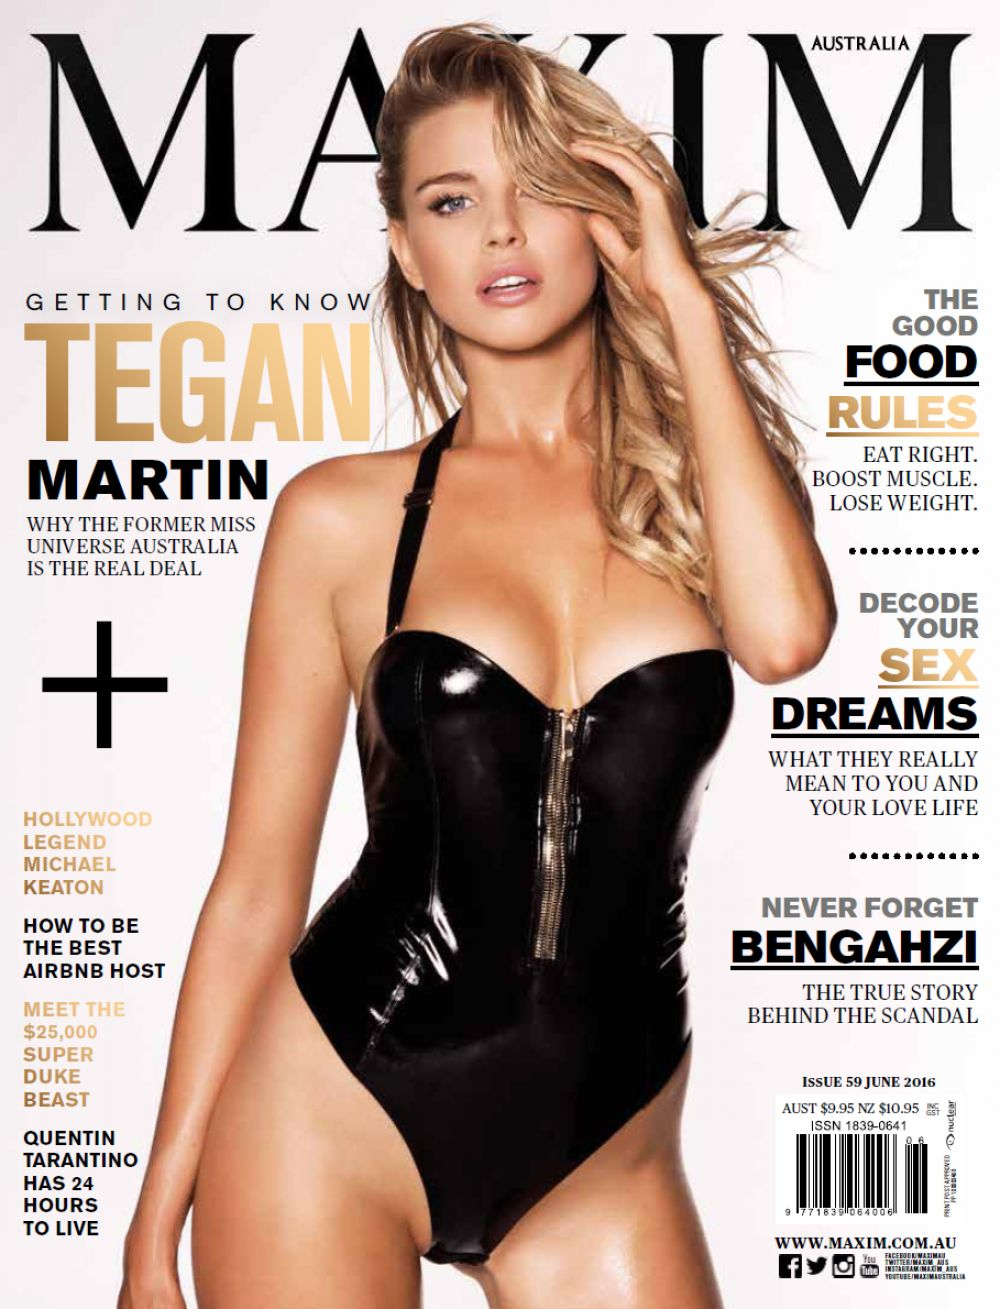 TEGAN MARTIN in Maxim Magazine, Australia June 2016 Issue